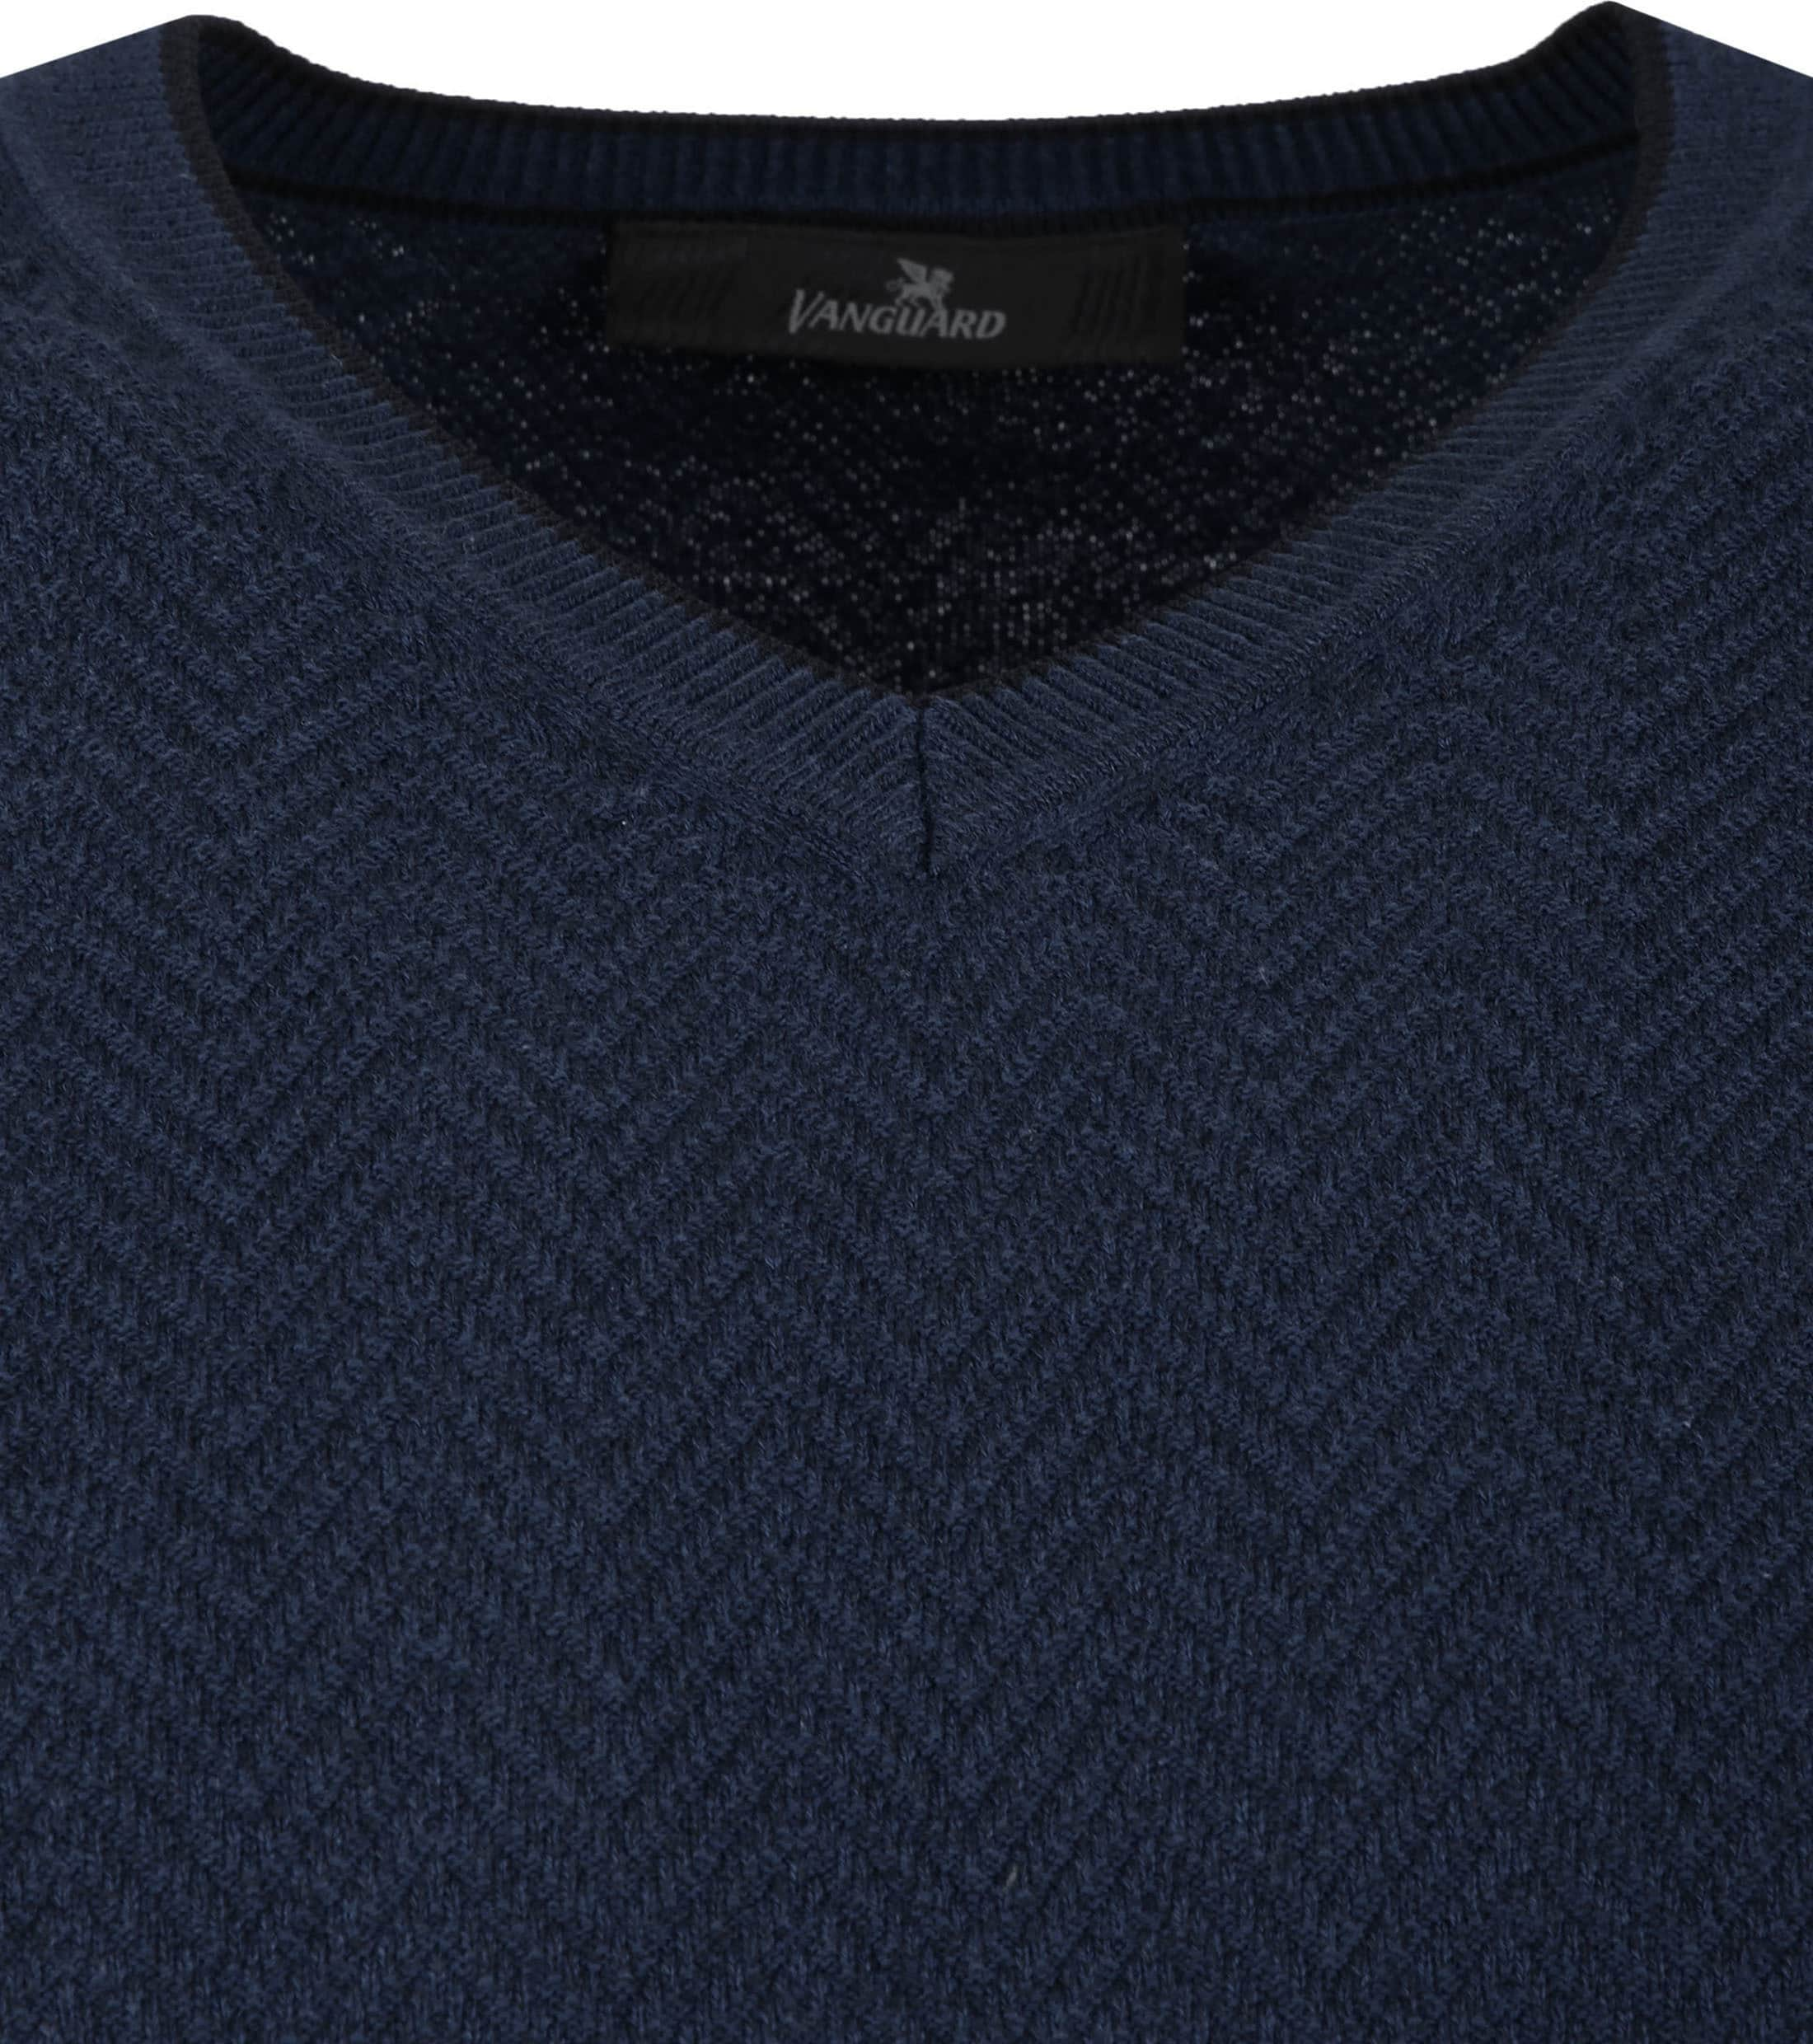 Vanguard Pullover Dark Blue foto 1